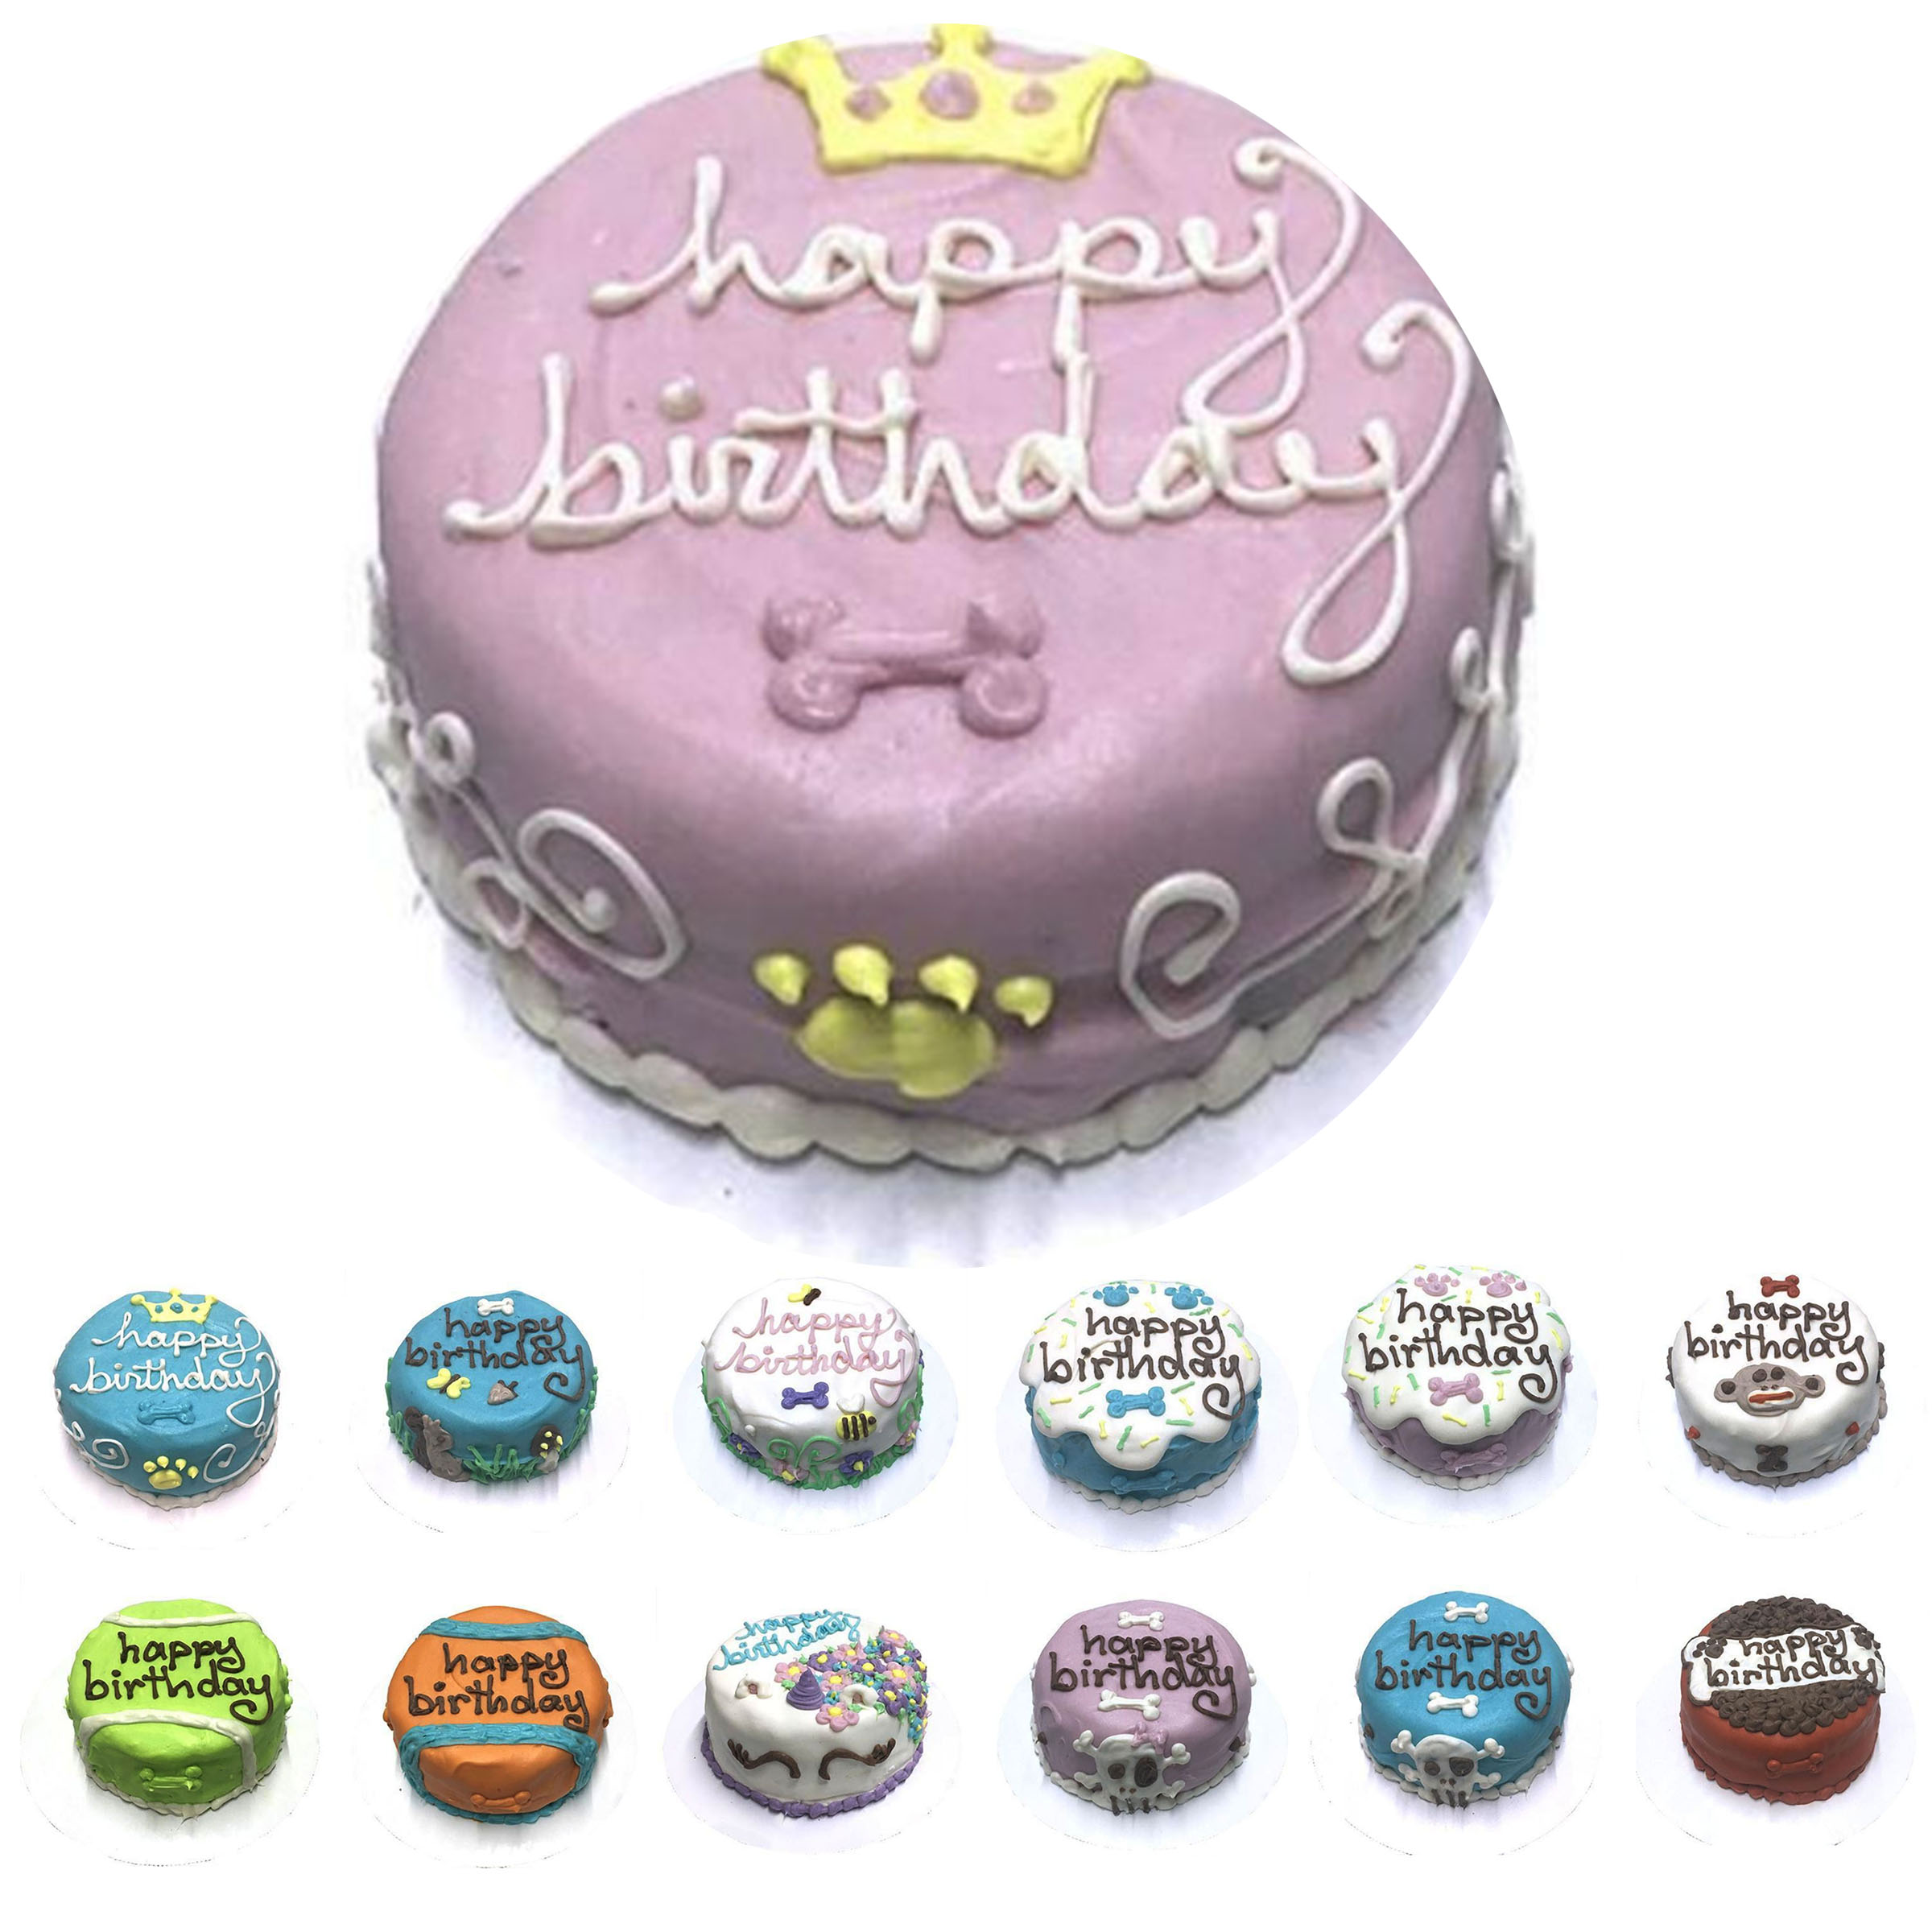 Specialty Personalized Dog Birthday Cake Bubba Rose